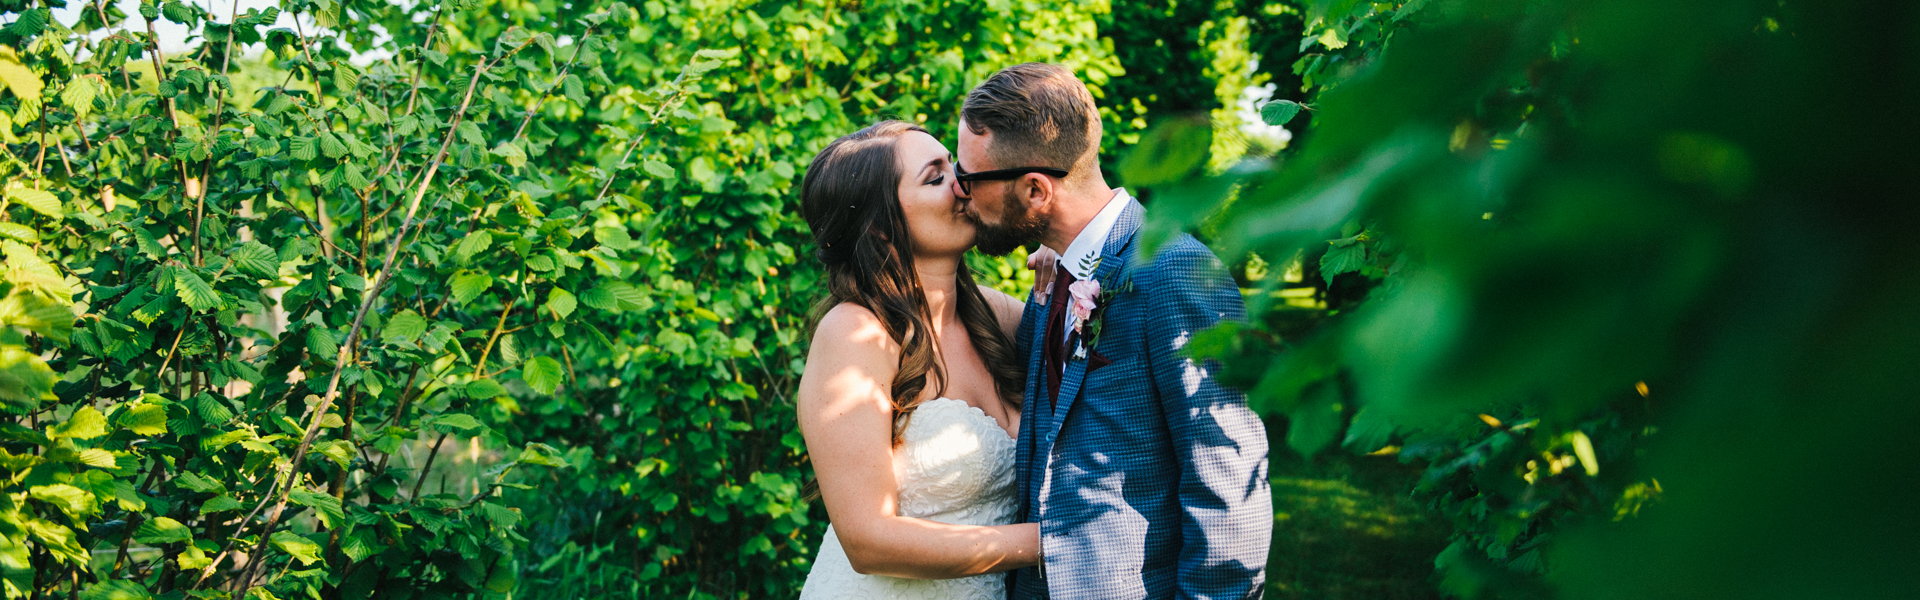 Grittenham Barn Wedding . Brighton wedding . fun wedding photography . Creative wedding photographer . Allison Dewey Photography